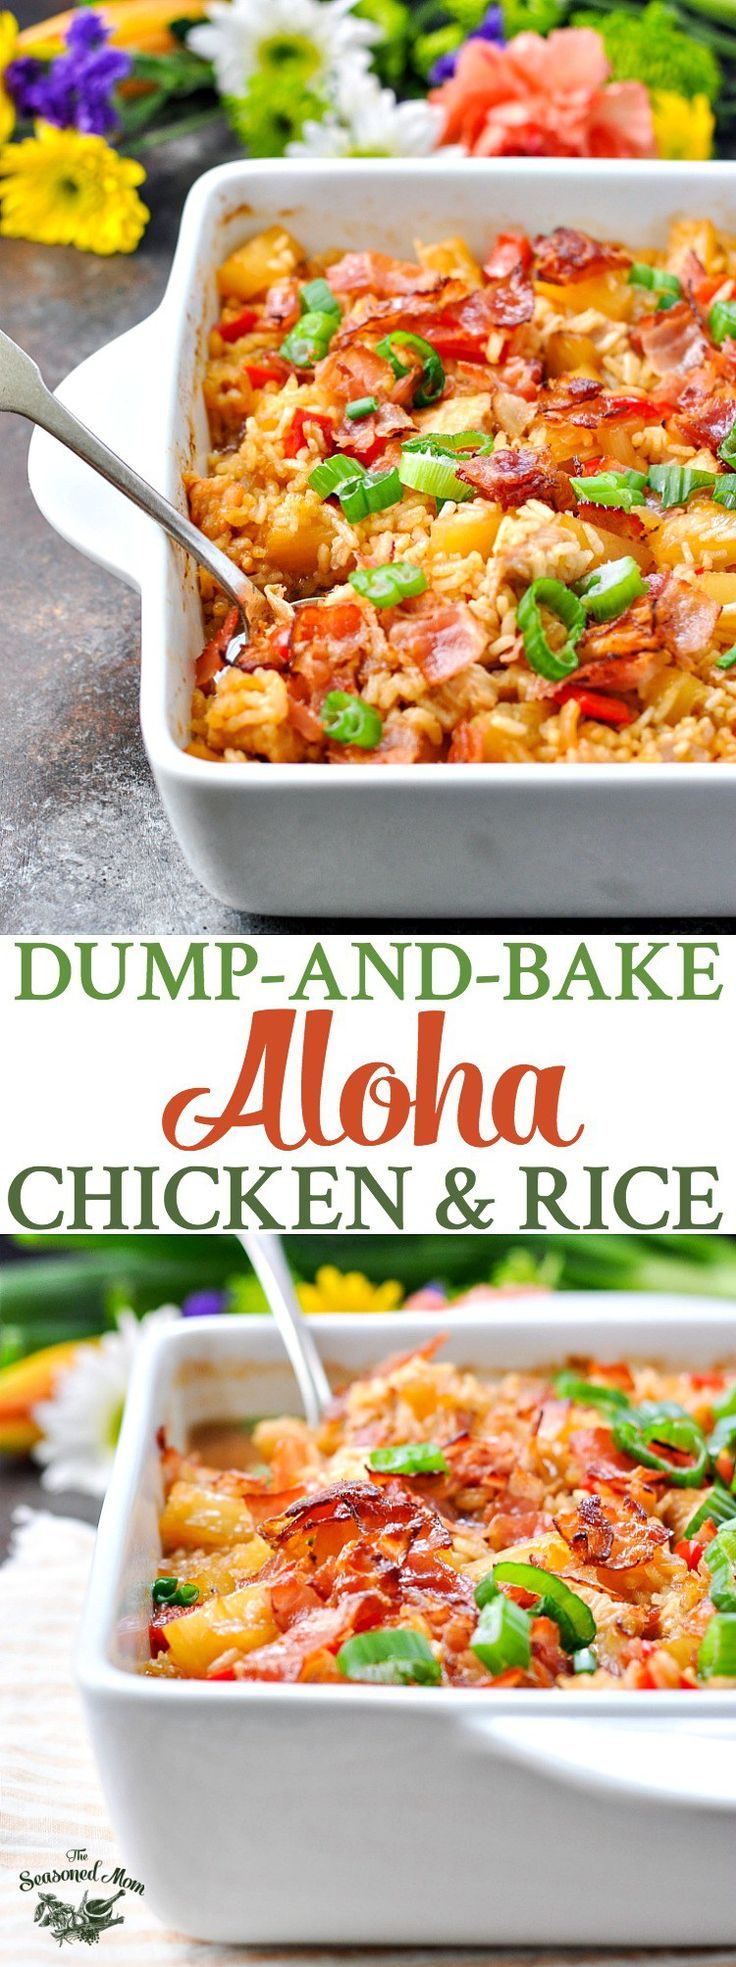 Dump-and-Bake Aloha Chicken and Rice | Easy Dinner Recipes | Dinner Ideas | Chicken Recipes | Chicken Breast Recipes | Casserole Recipes | Bacon